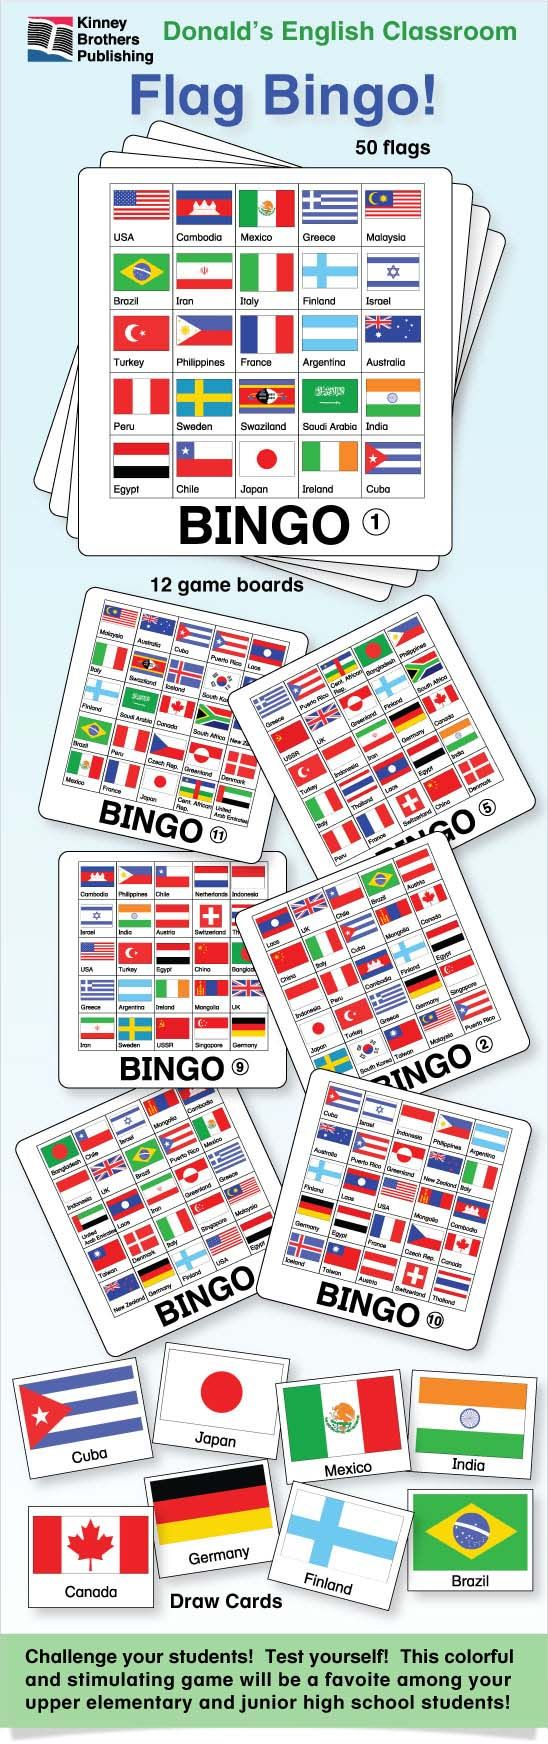 Flag Bingo is an entertaining activity utilizing 50 flag images and includes draw cards for use when playing in class.  This will become a mainstay in your collection of games and activities.  I've used this game for years in my ESL classroom where it's always a hit!  Challenge your students and test yourself!  Enjoy!  $2 on TpT  #ESL #ELL #EFL